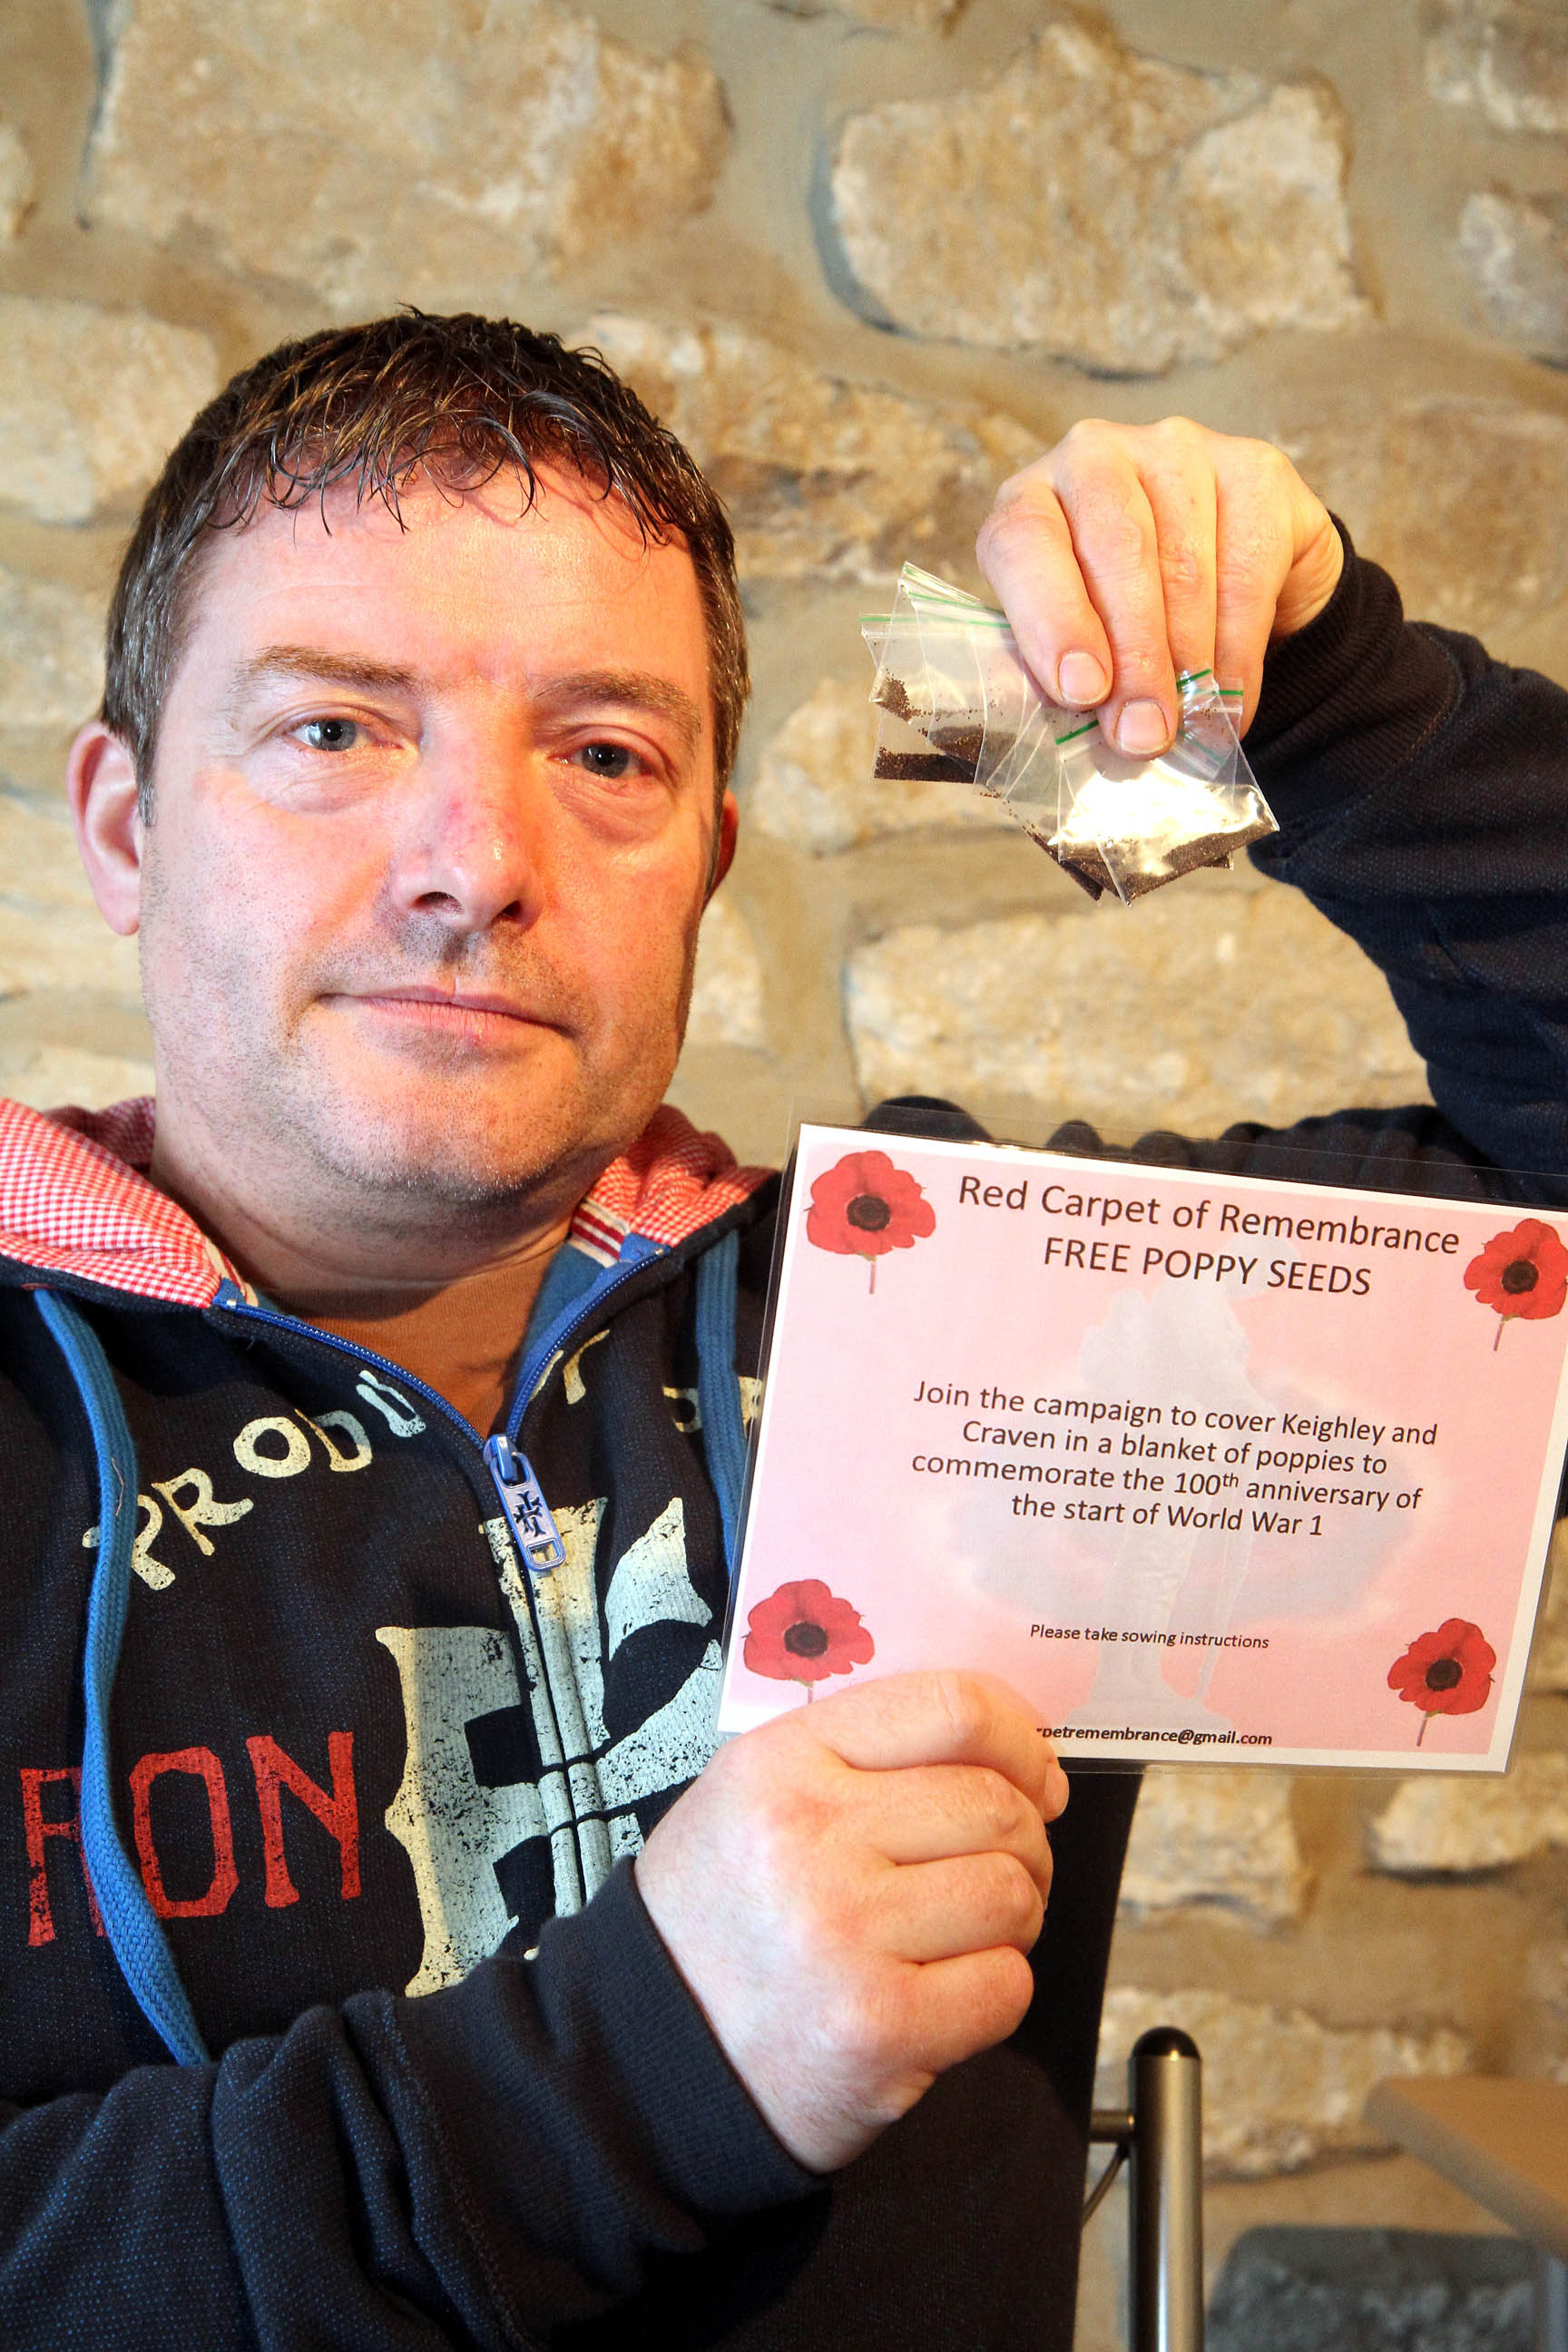 Andrew Hardaker with some of the poppy seeds he is donating to the public to mark the centenary of the start of the First World War